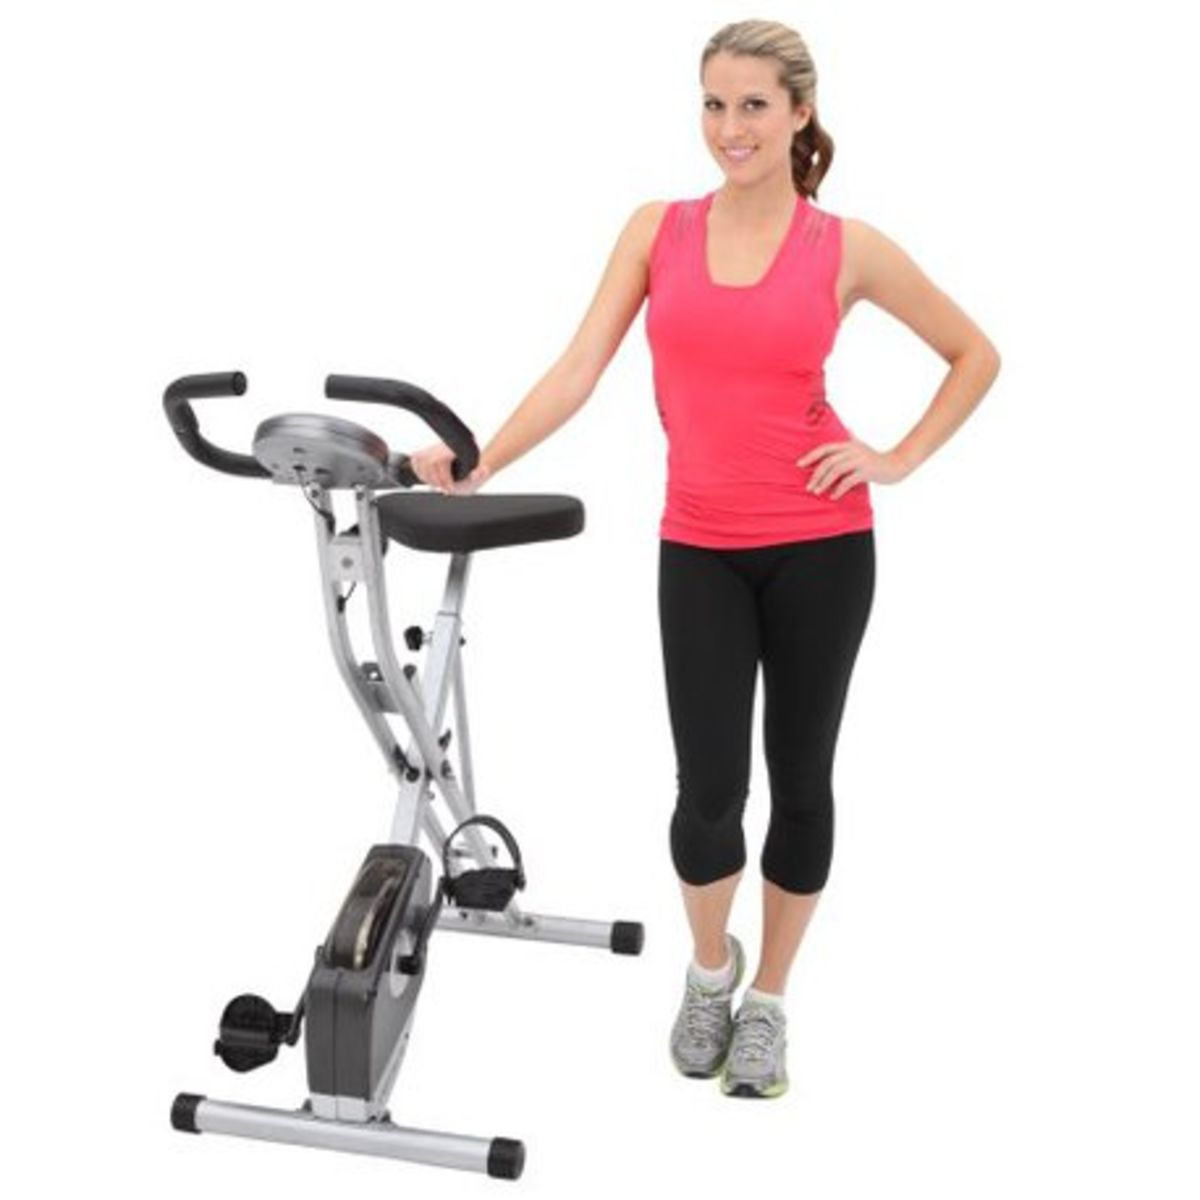 Headline for Top 10 Best Selling Exercise Bikes